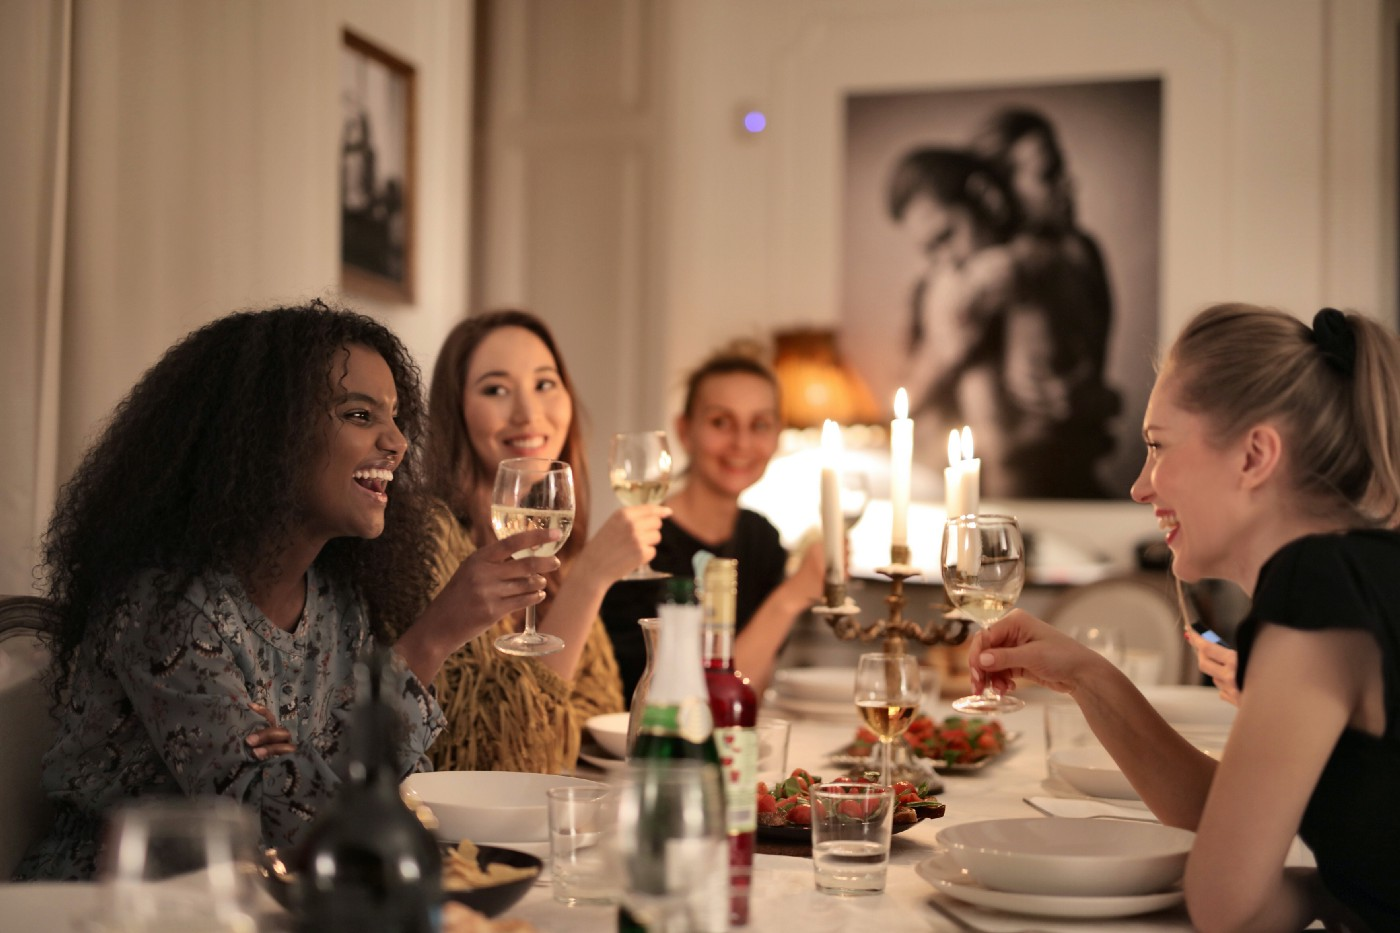 Women Holding Wine Glasses and laughing. They're at a candlelit dinner party.